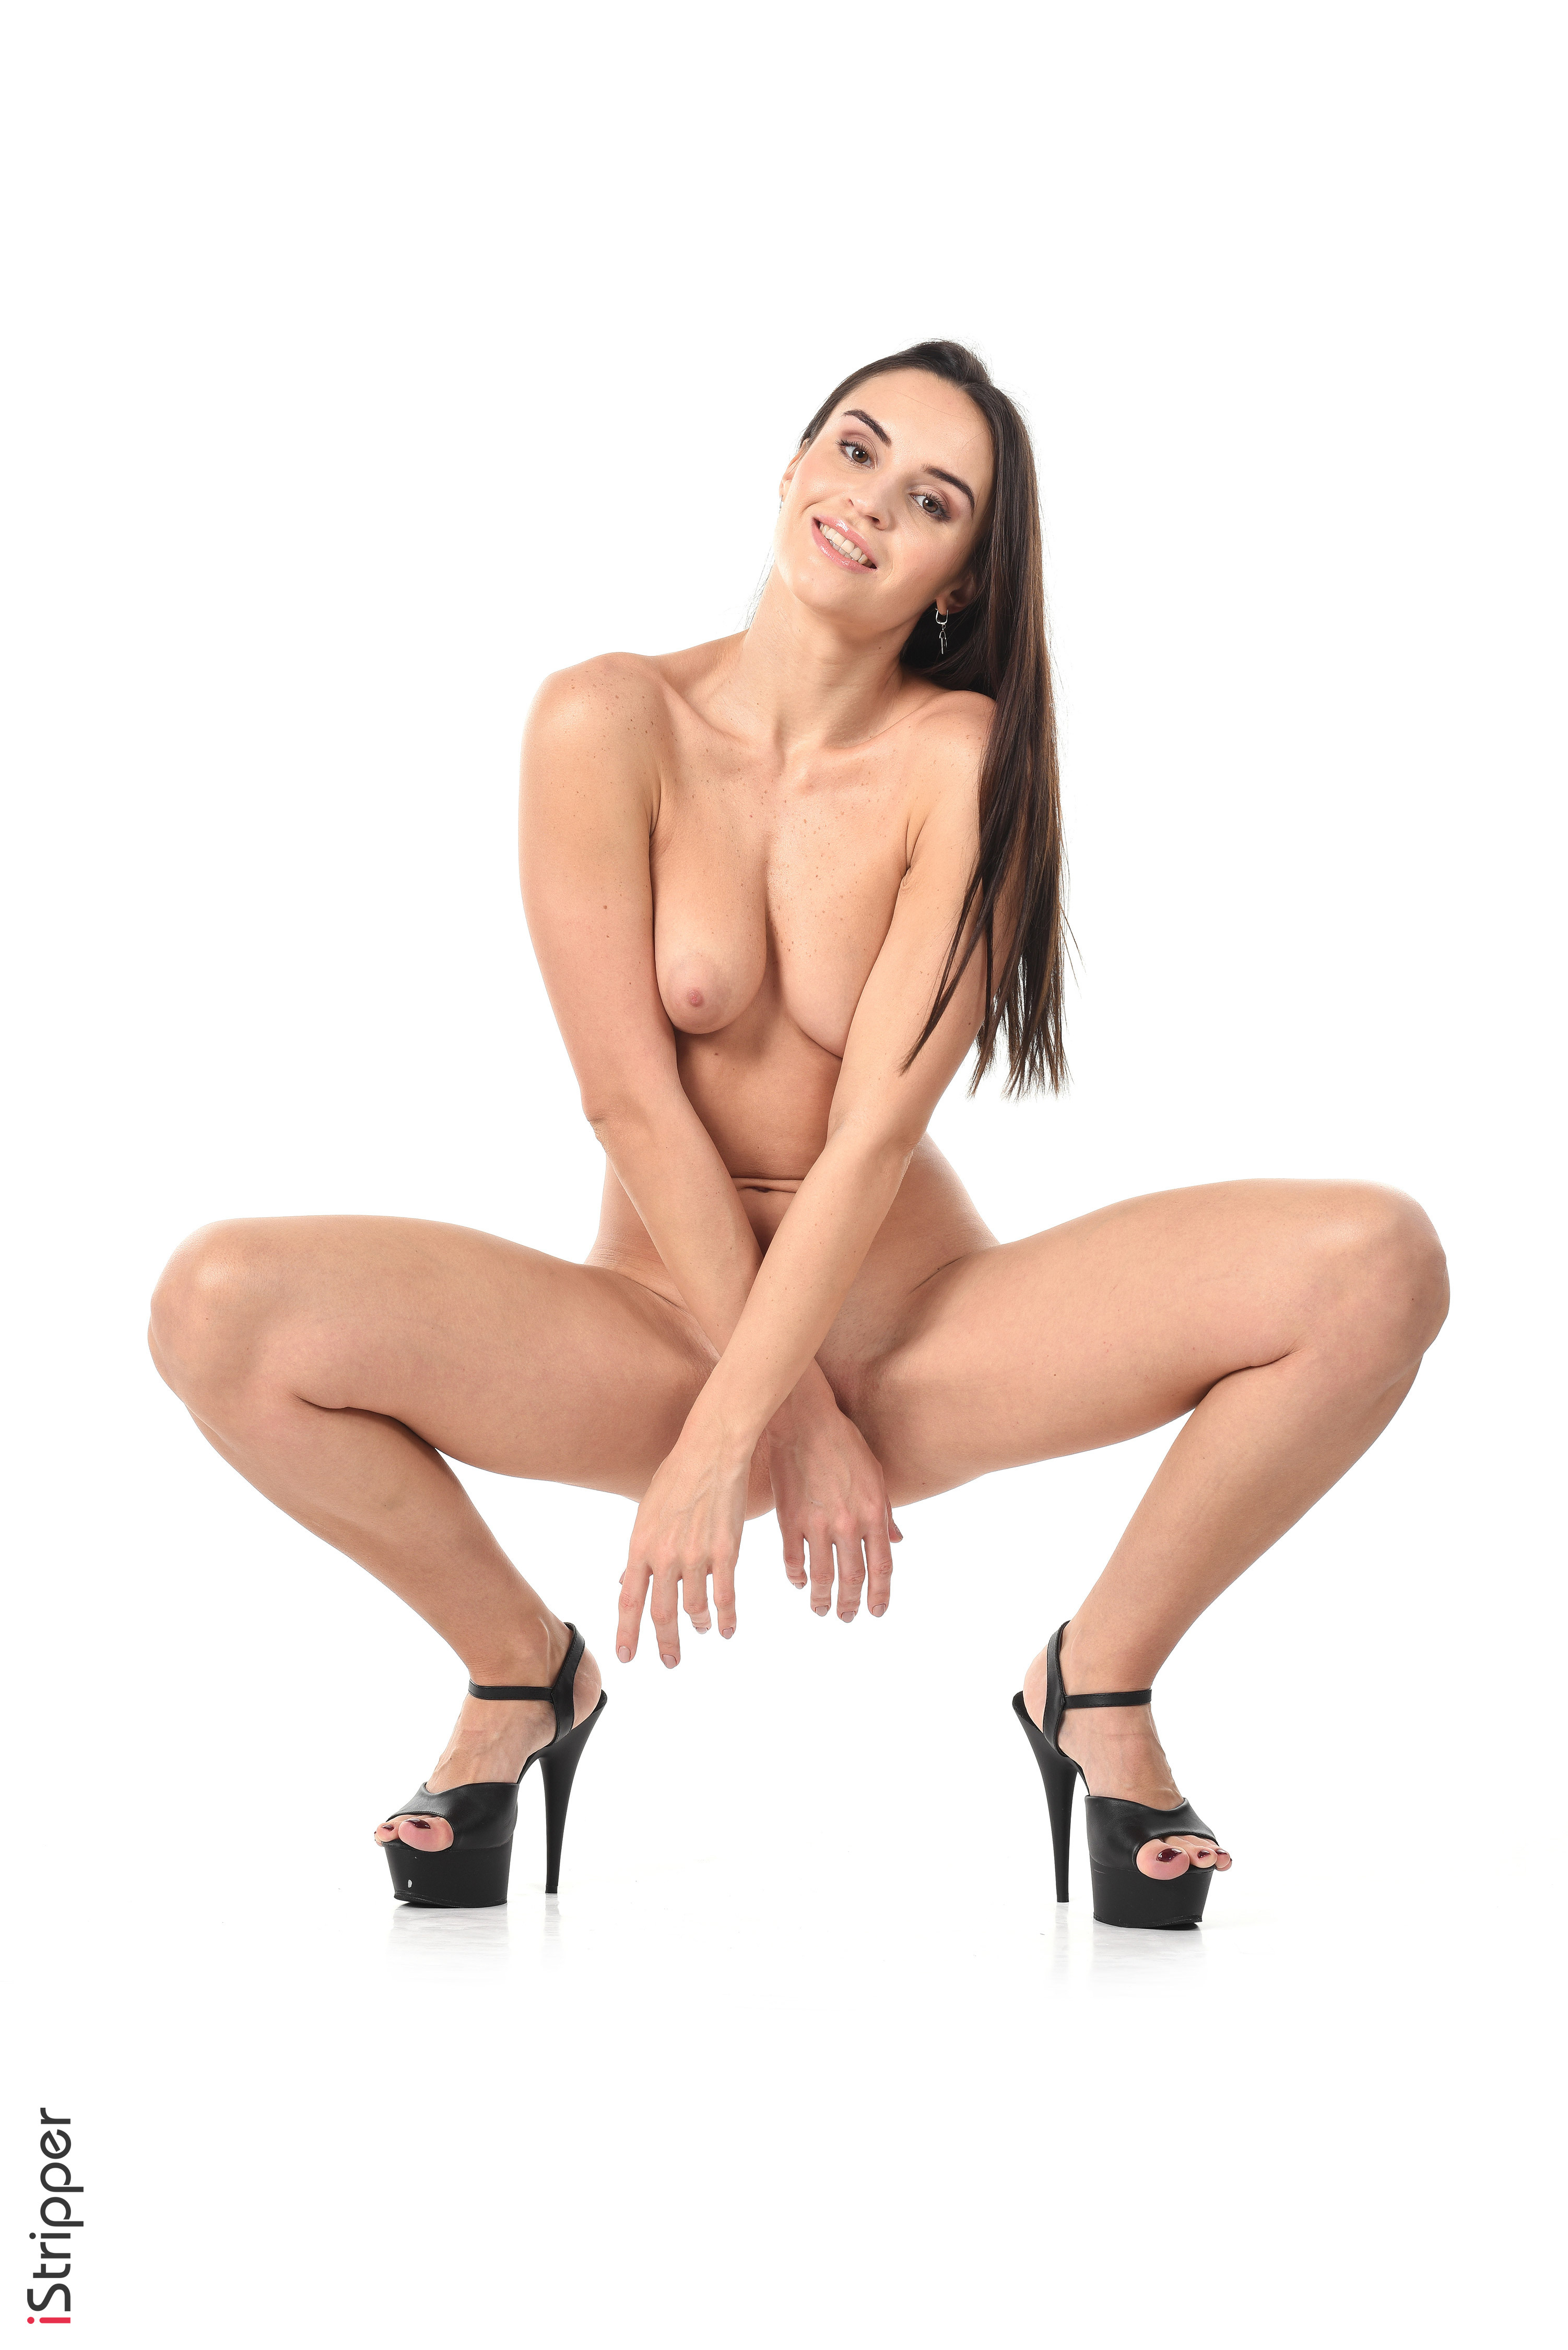 nude girls wall papers